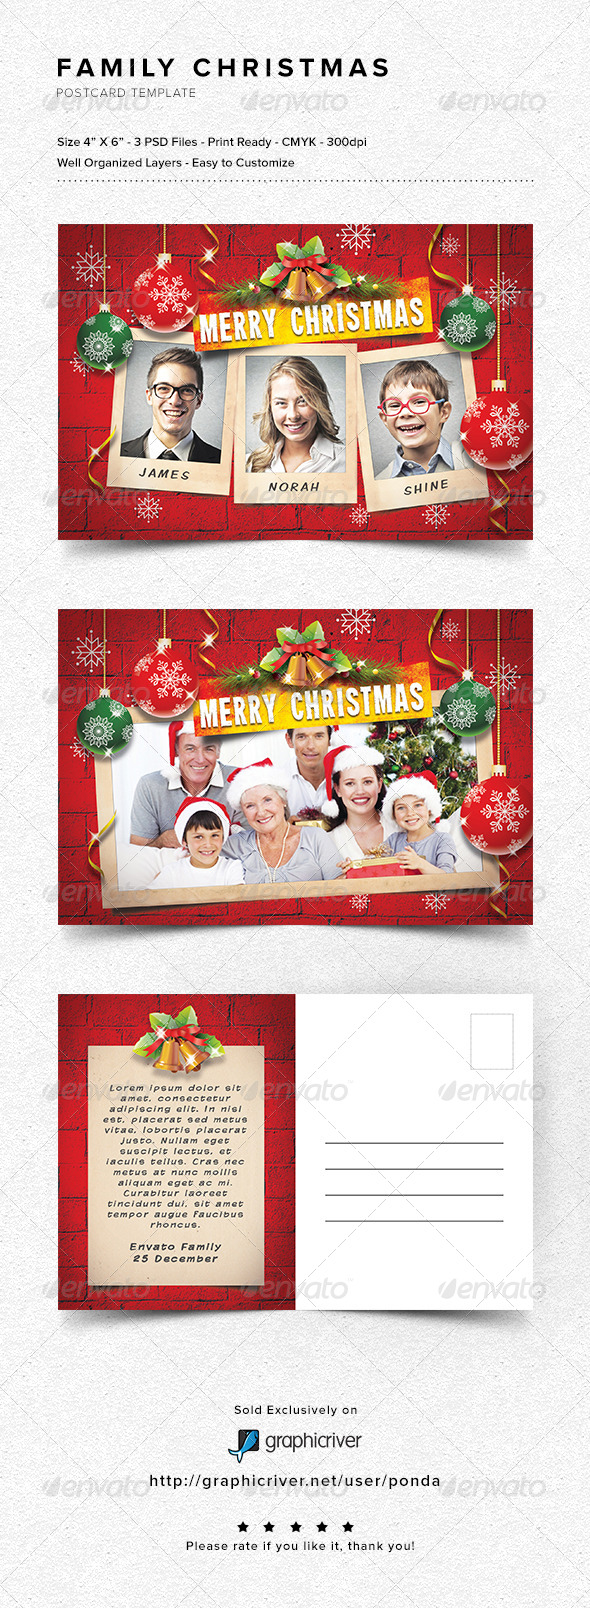 GraphicRiver Family Christmas Postcard Template 6247333